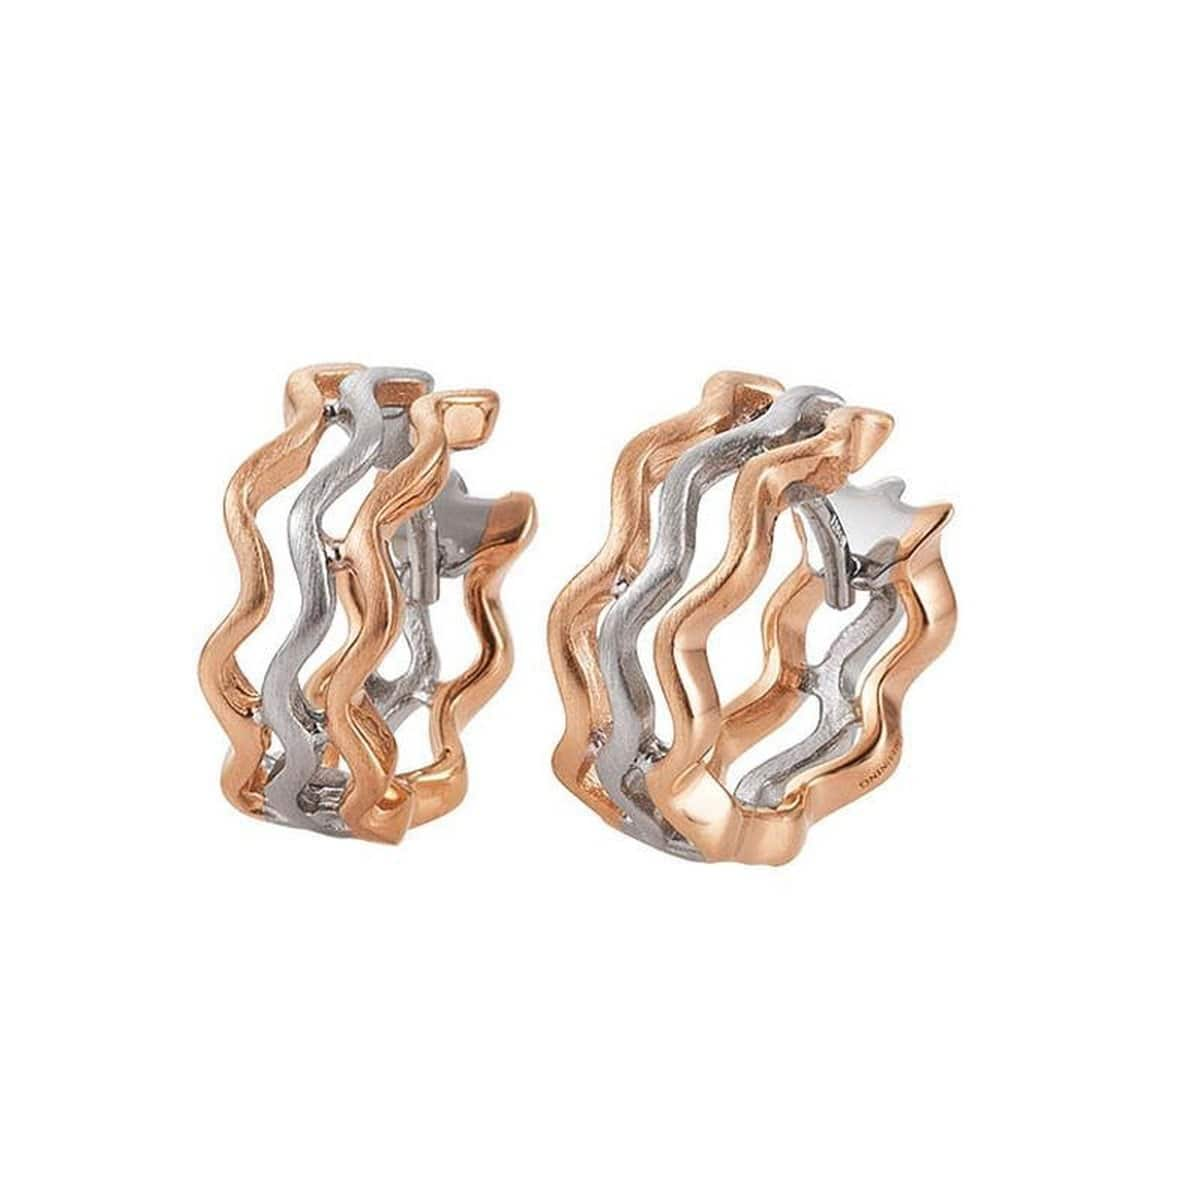 Rose Gold Plated Sterling Silver Earrings - 06/60763-Breuning-Renee Taylor Gallery